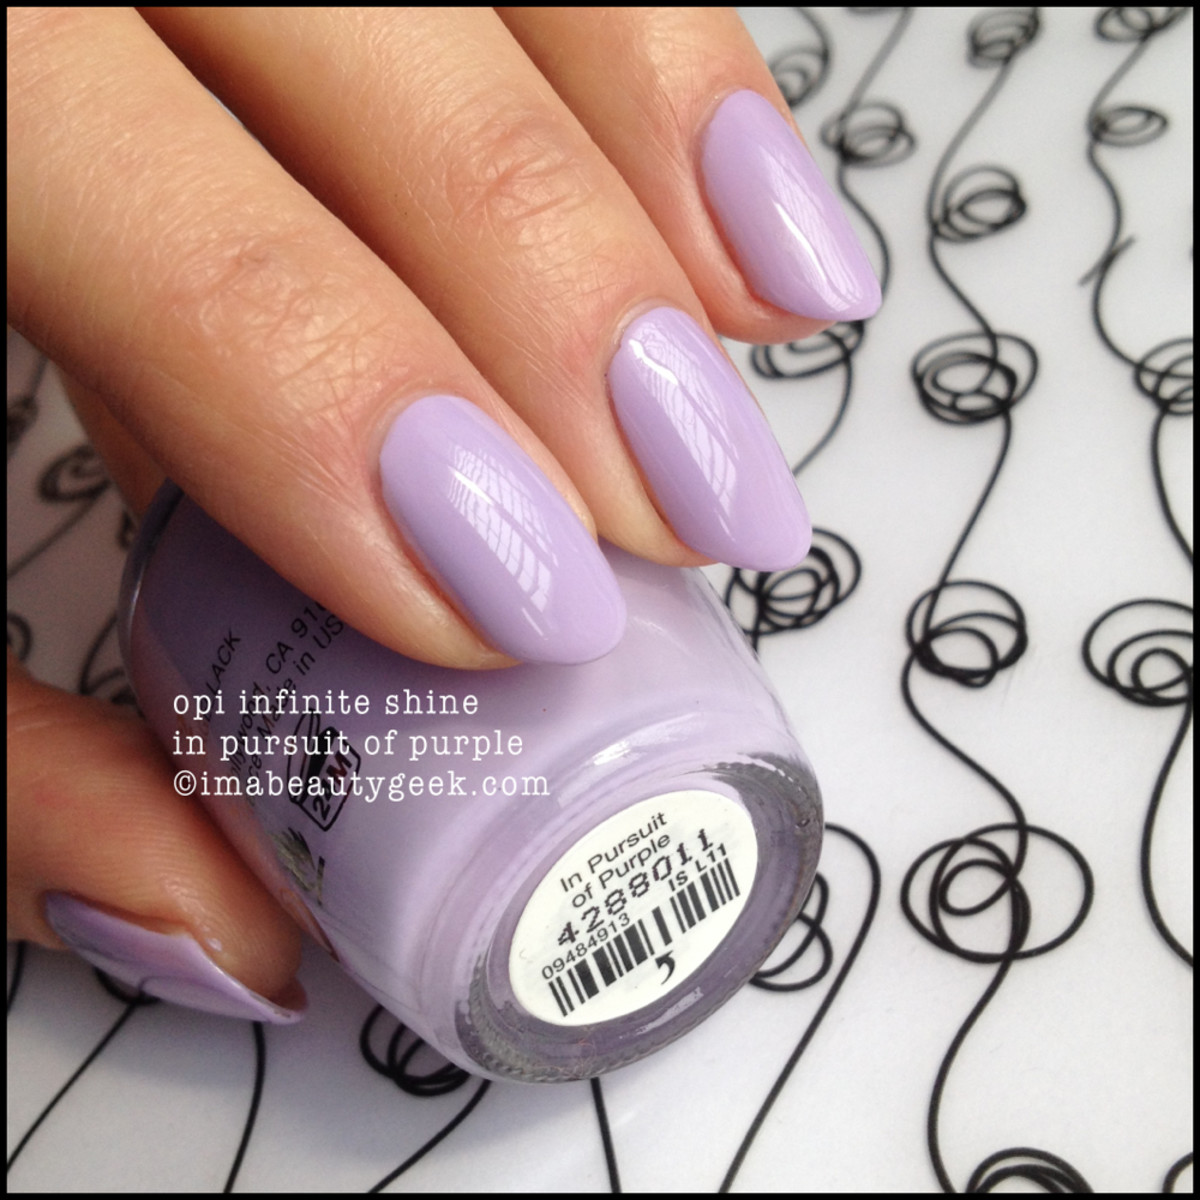 OPI In Pursuit of Purple Infinite Shine Launch Shade